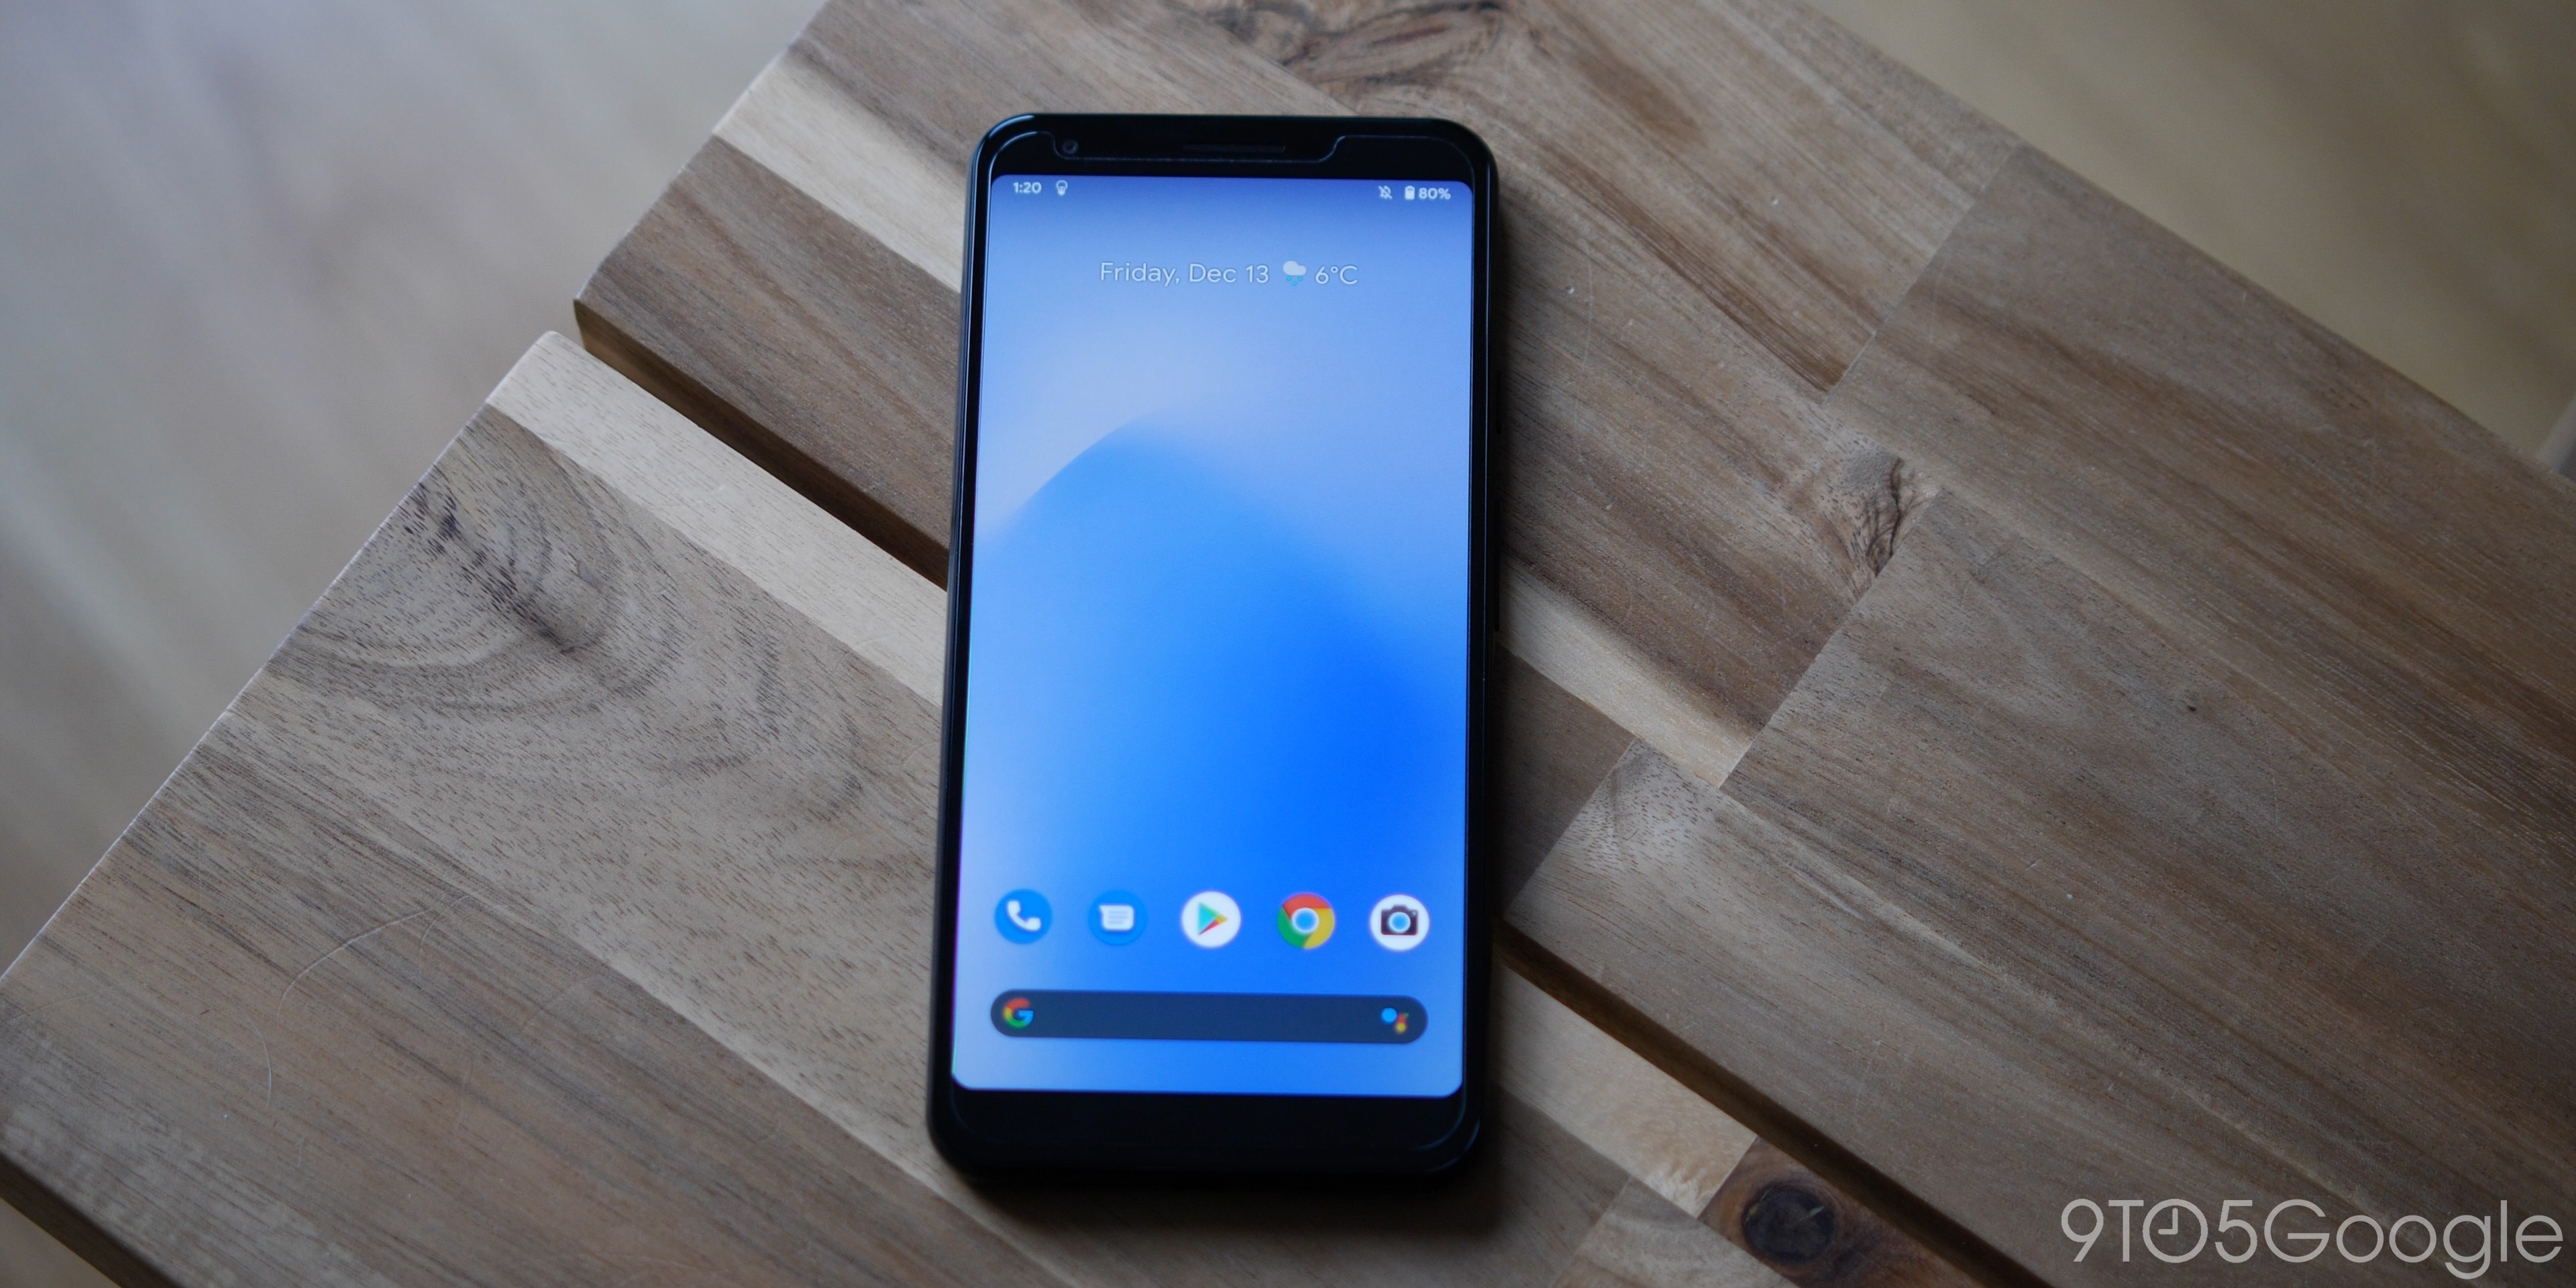 Pixel 3a - display